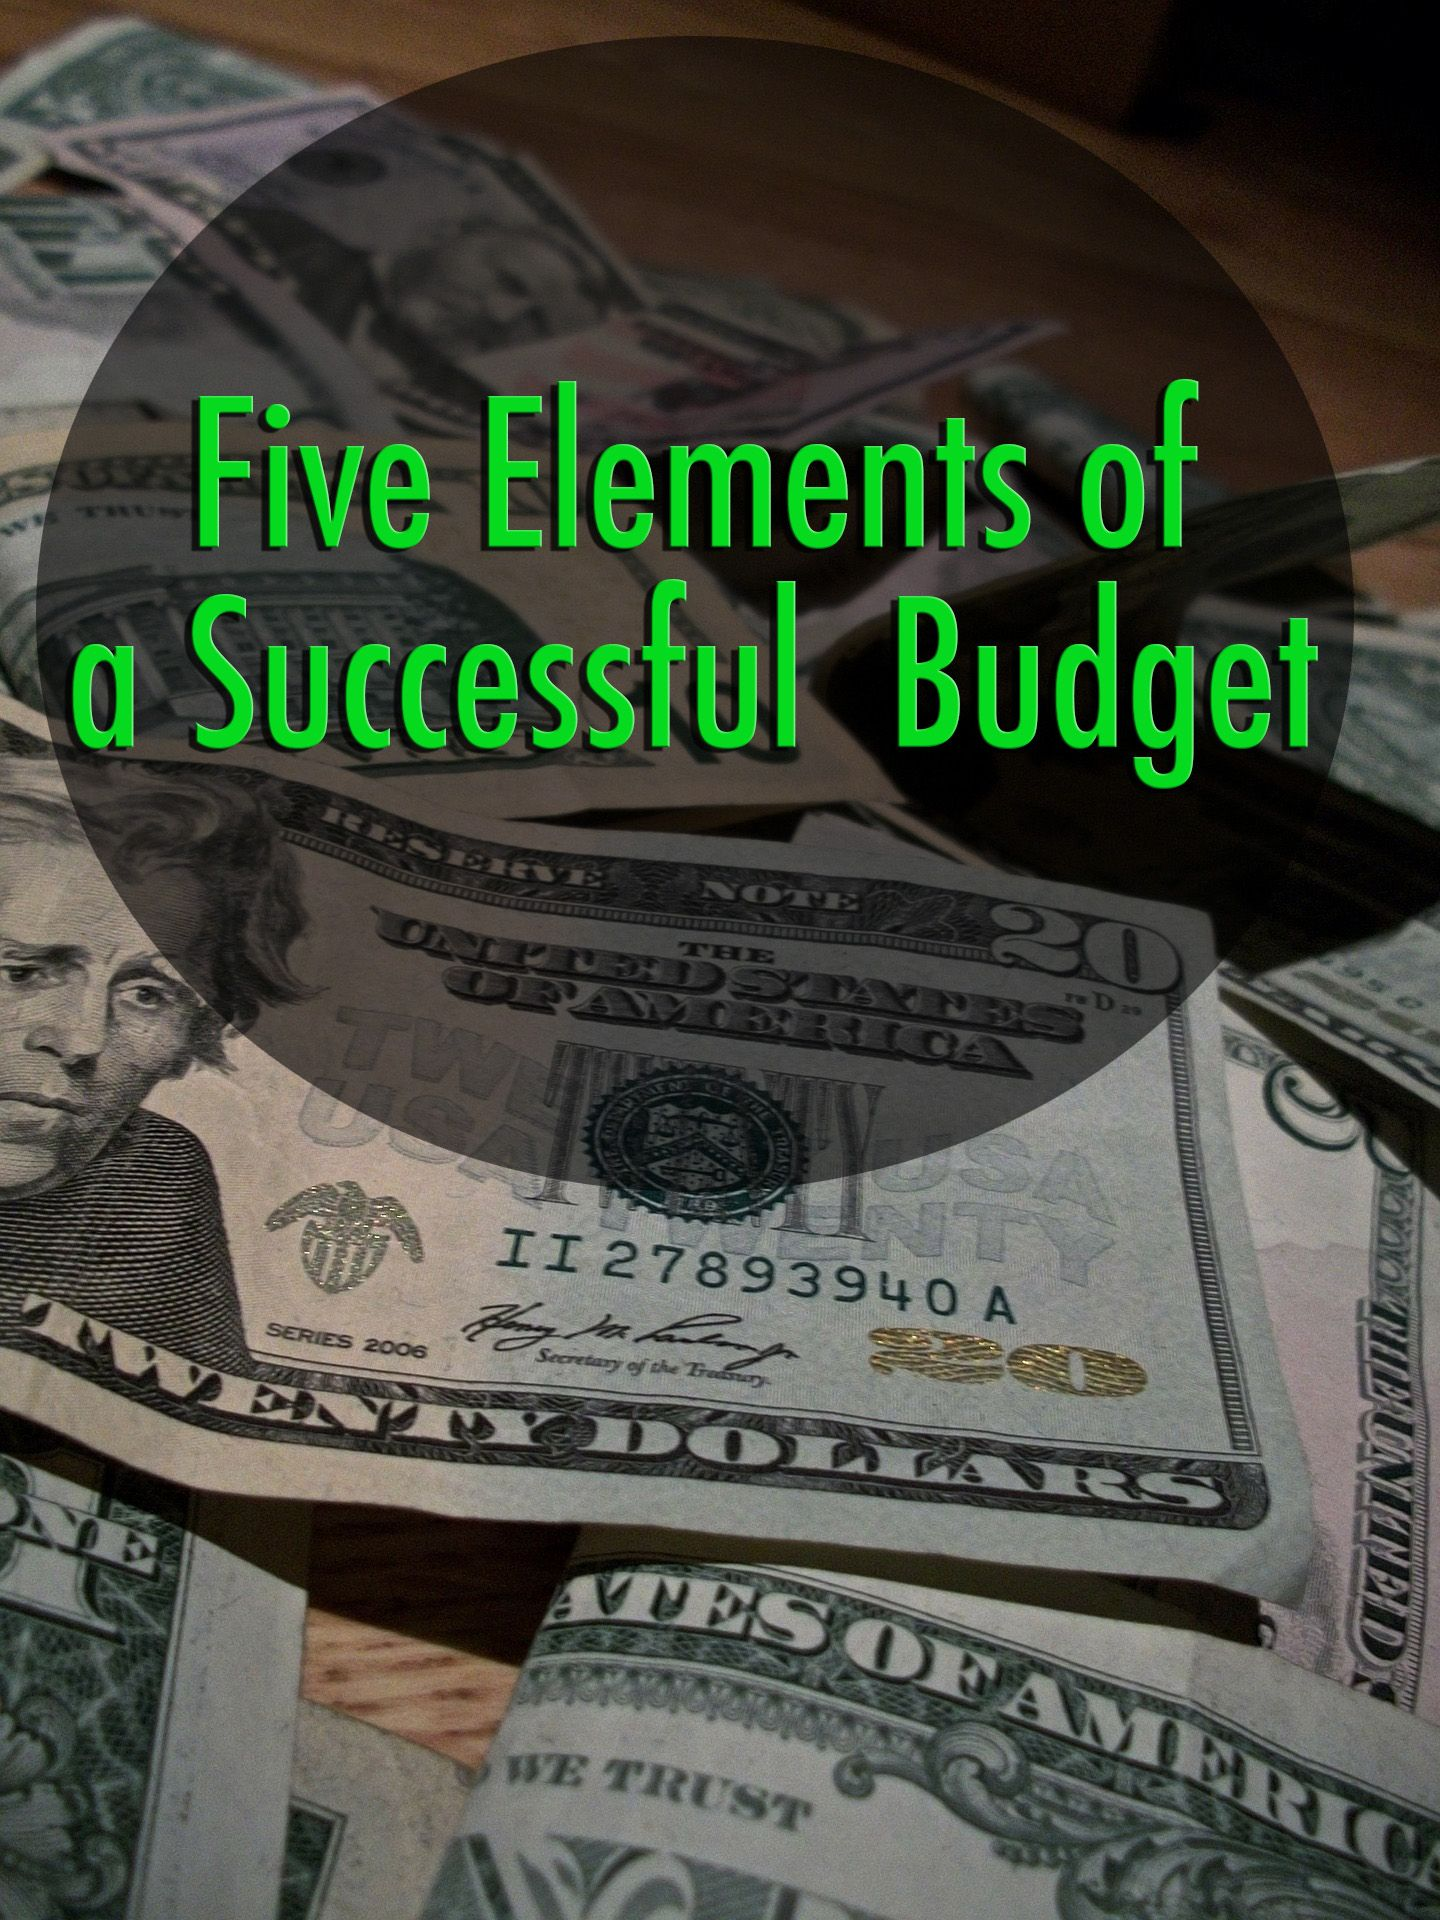 The 5 Elements Of A Successful Budget